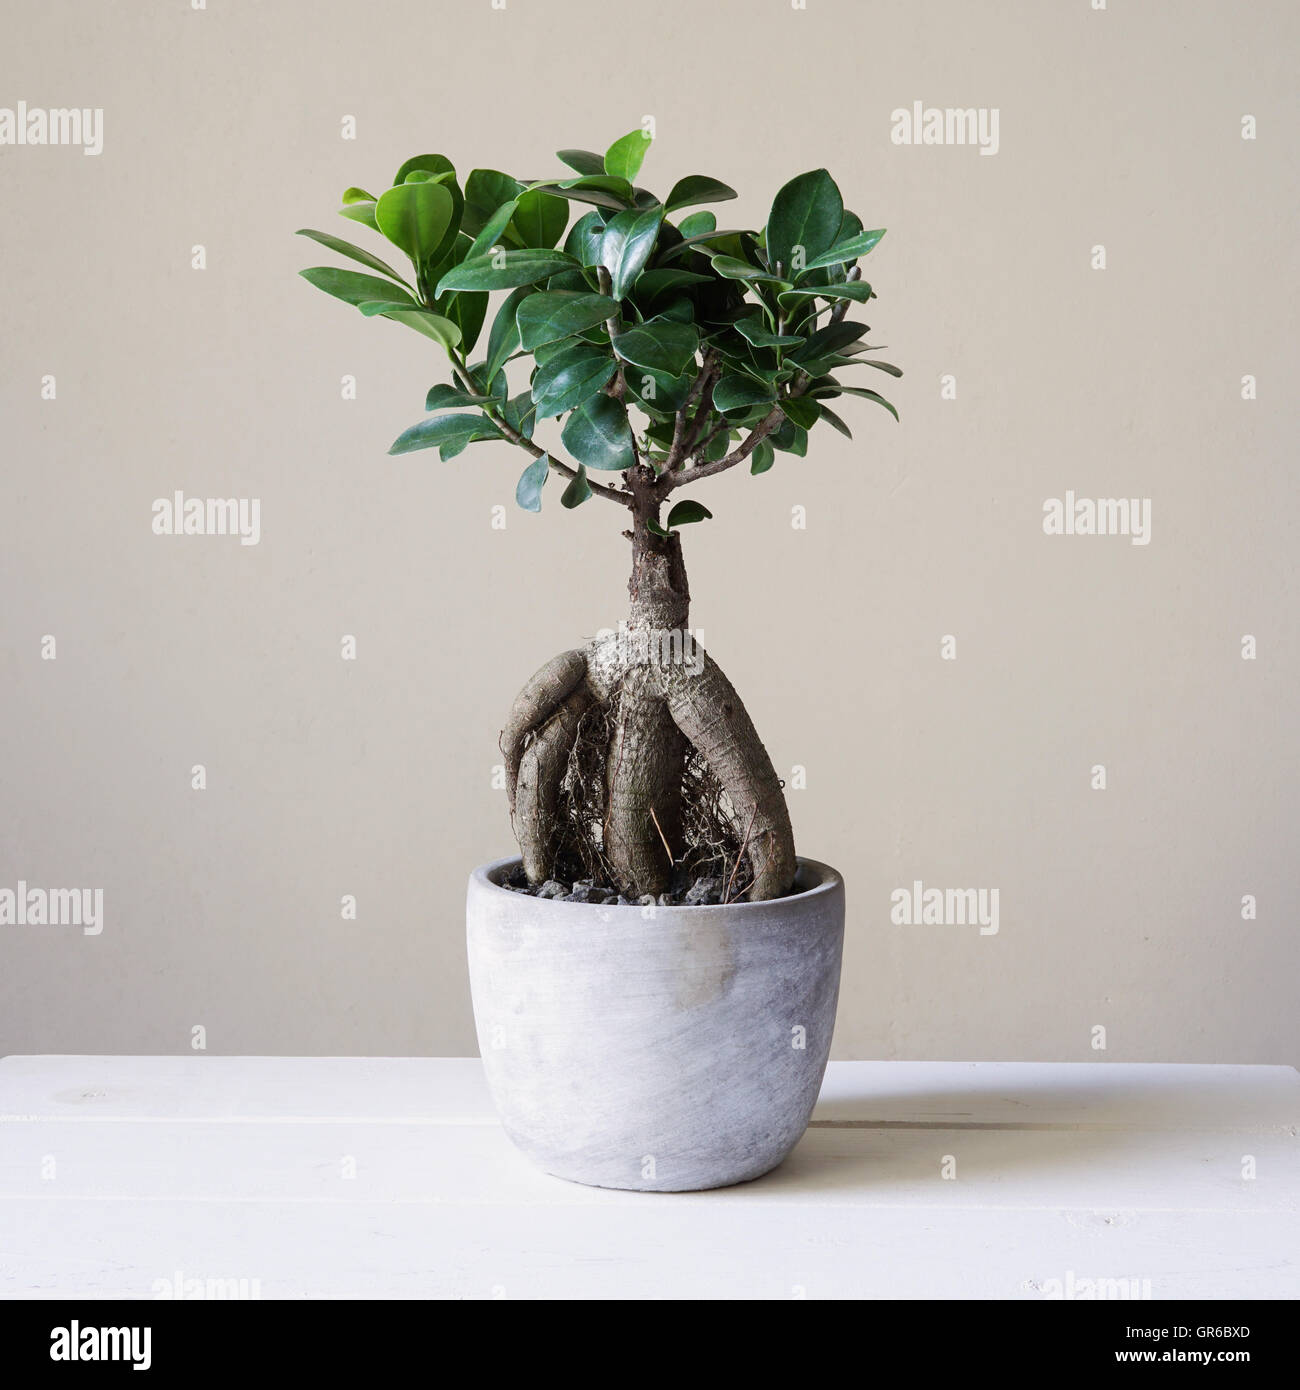 Ginseng Baum Ficus Plant Indoor Stock Photos And Ficus Plant Indoor Stock